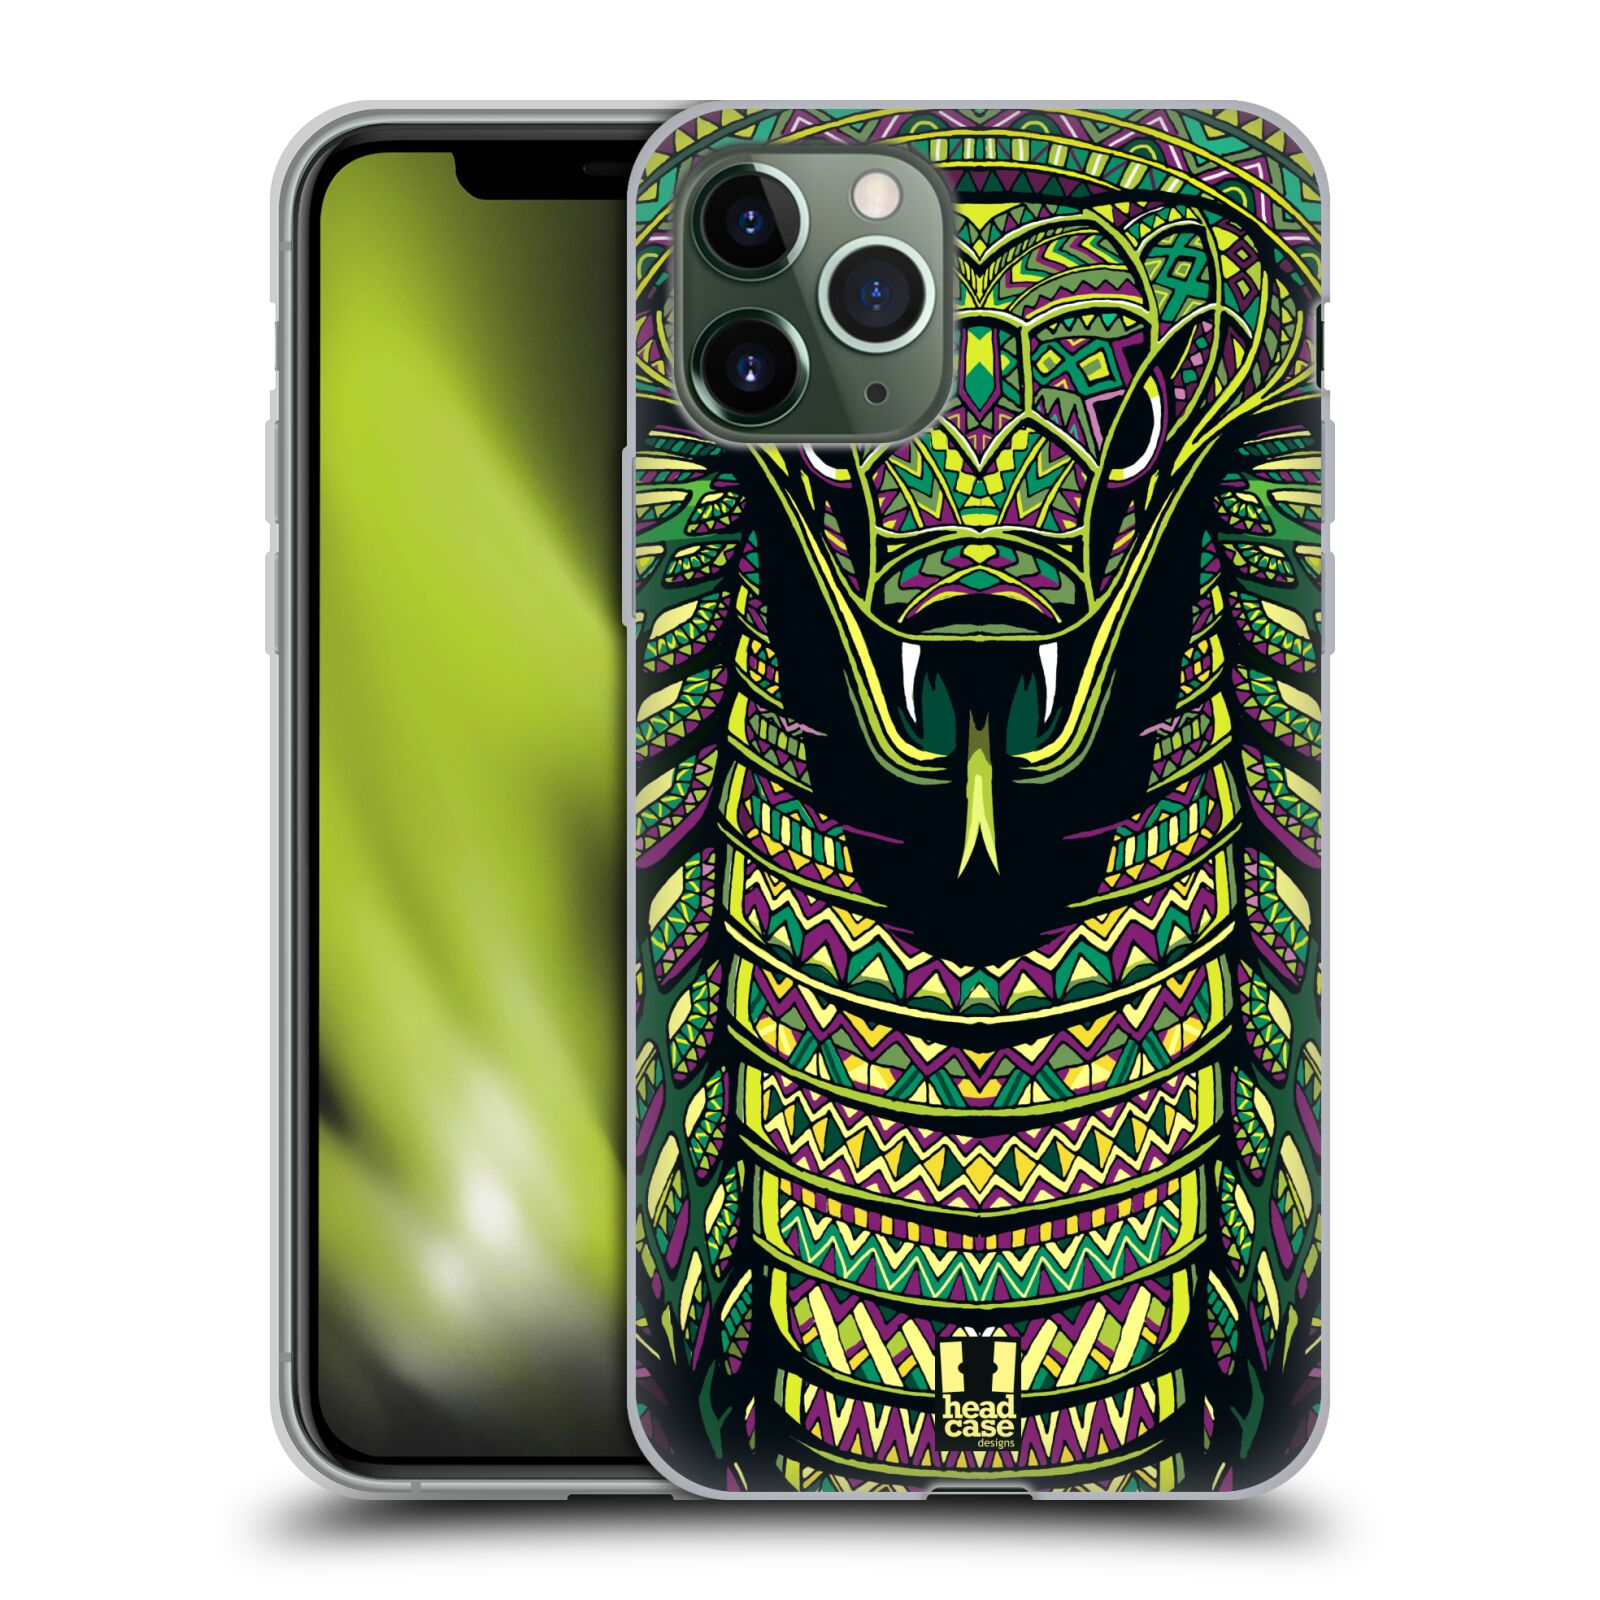 co je iphone , Silikonové pouzdro na mobil Apple iPhone 11 Pro - Head Case - AZTEC HAD